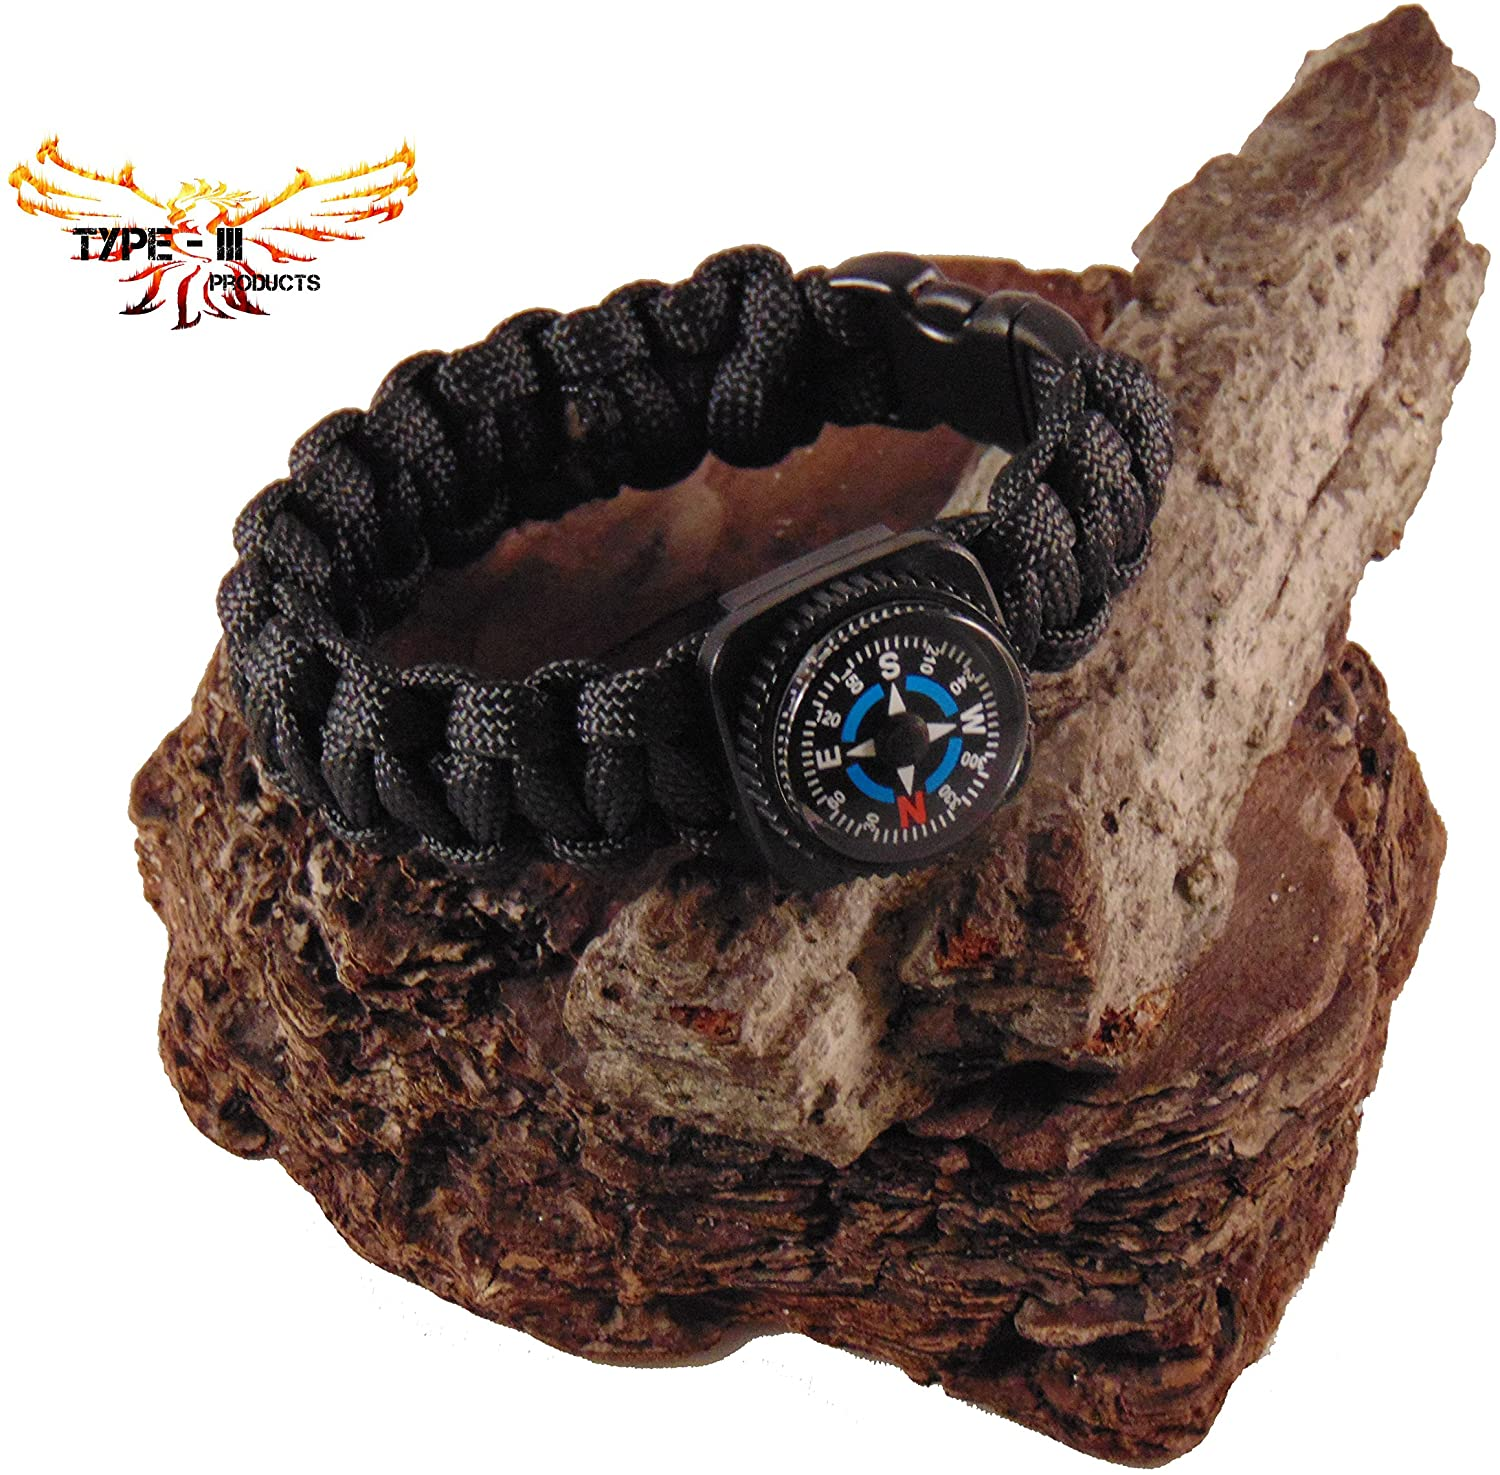 Type-III 7 Strand 550 Paracord Bracelet w/Compass in Solid Colors